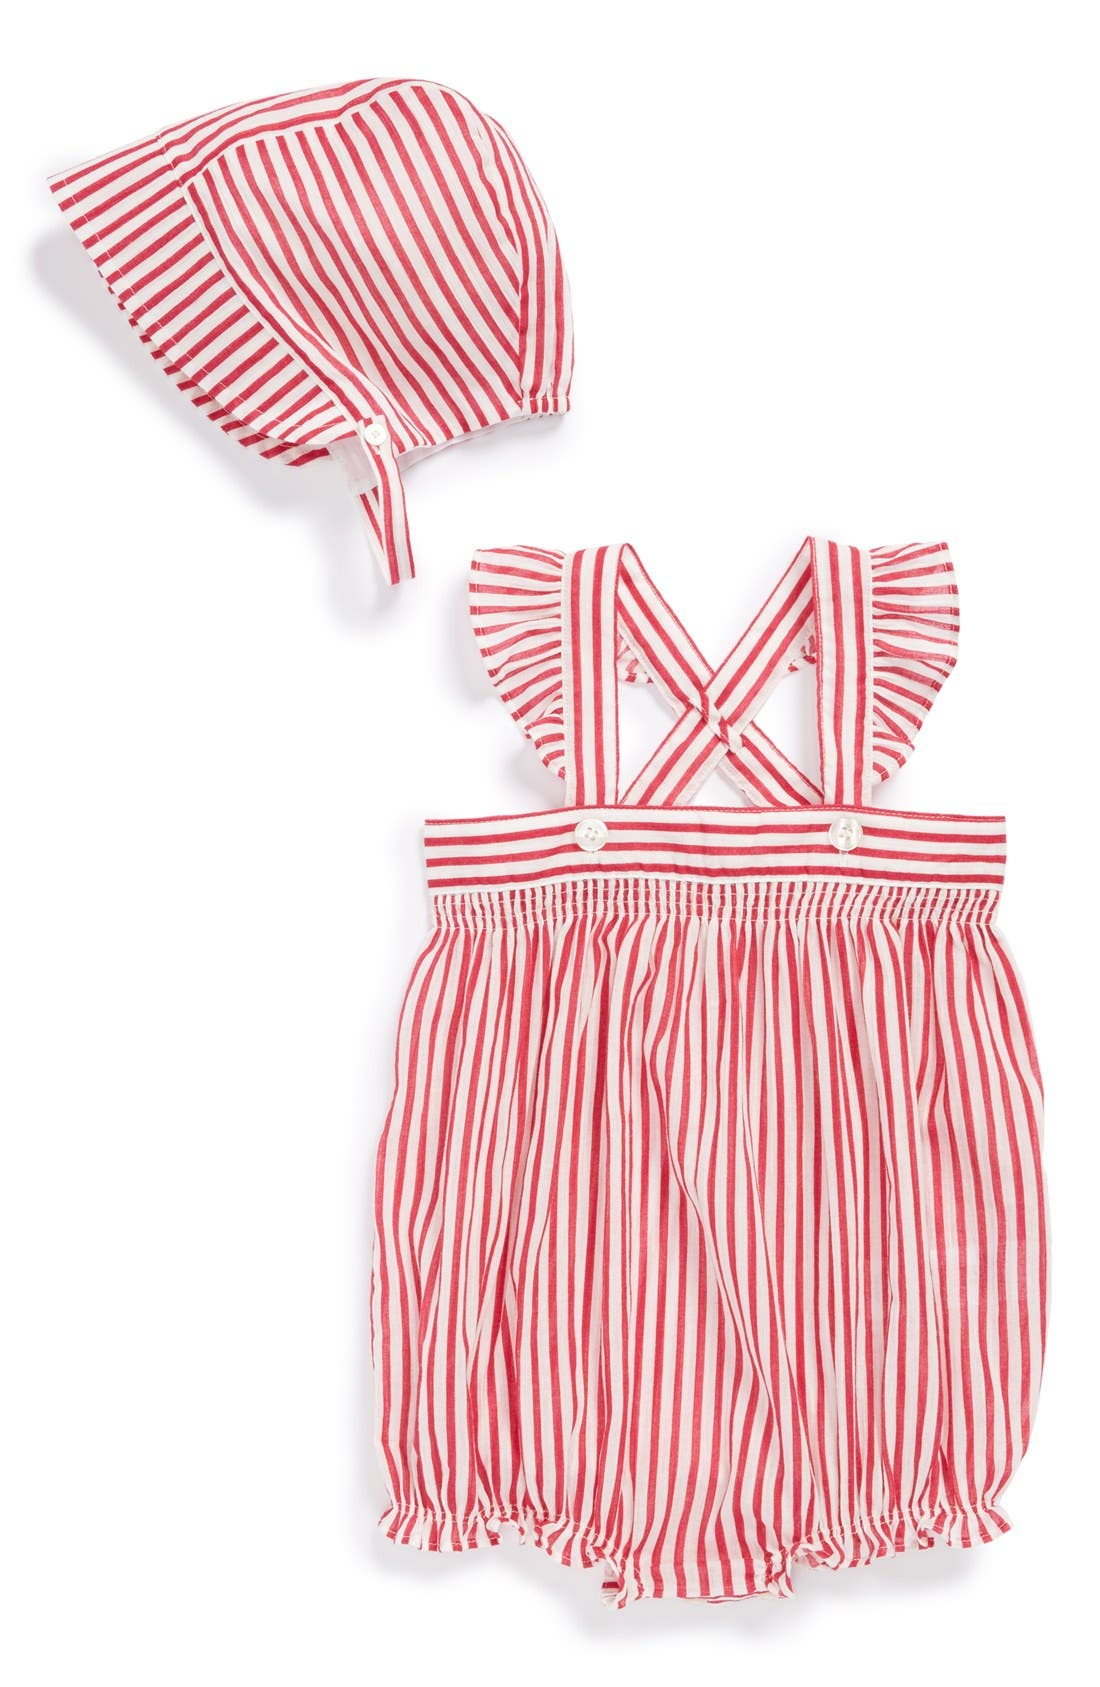 Main Image - Burberry Stripe Overalls & Sun Hat (Baby Girls)